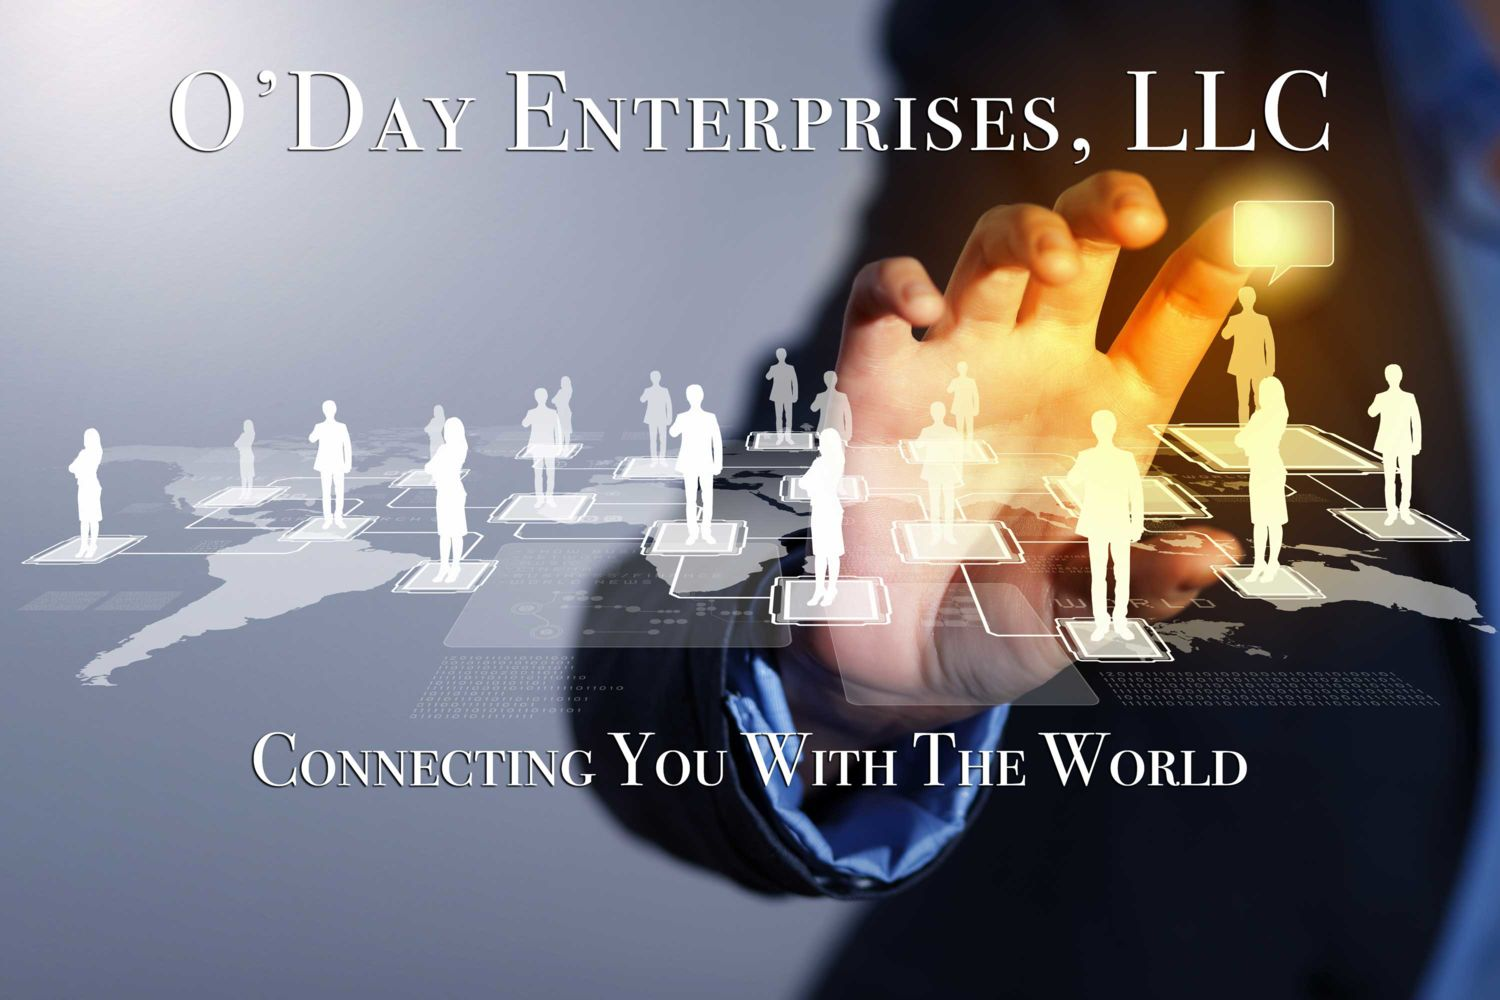 O'Day Enterprises, LLC - Connecting You With The World